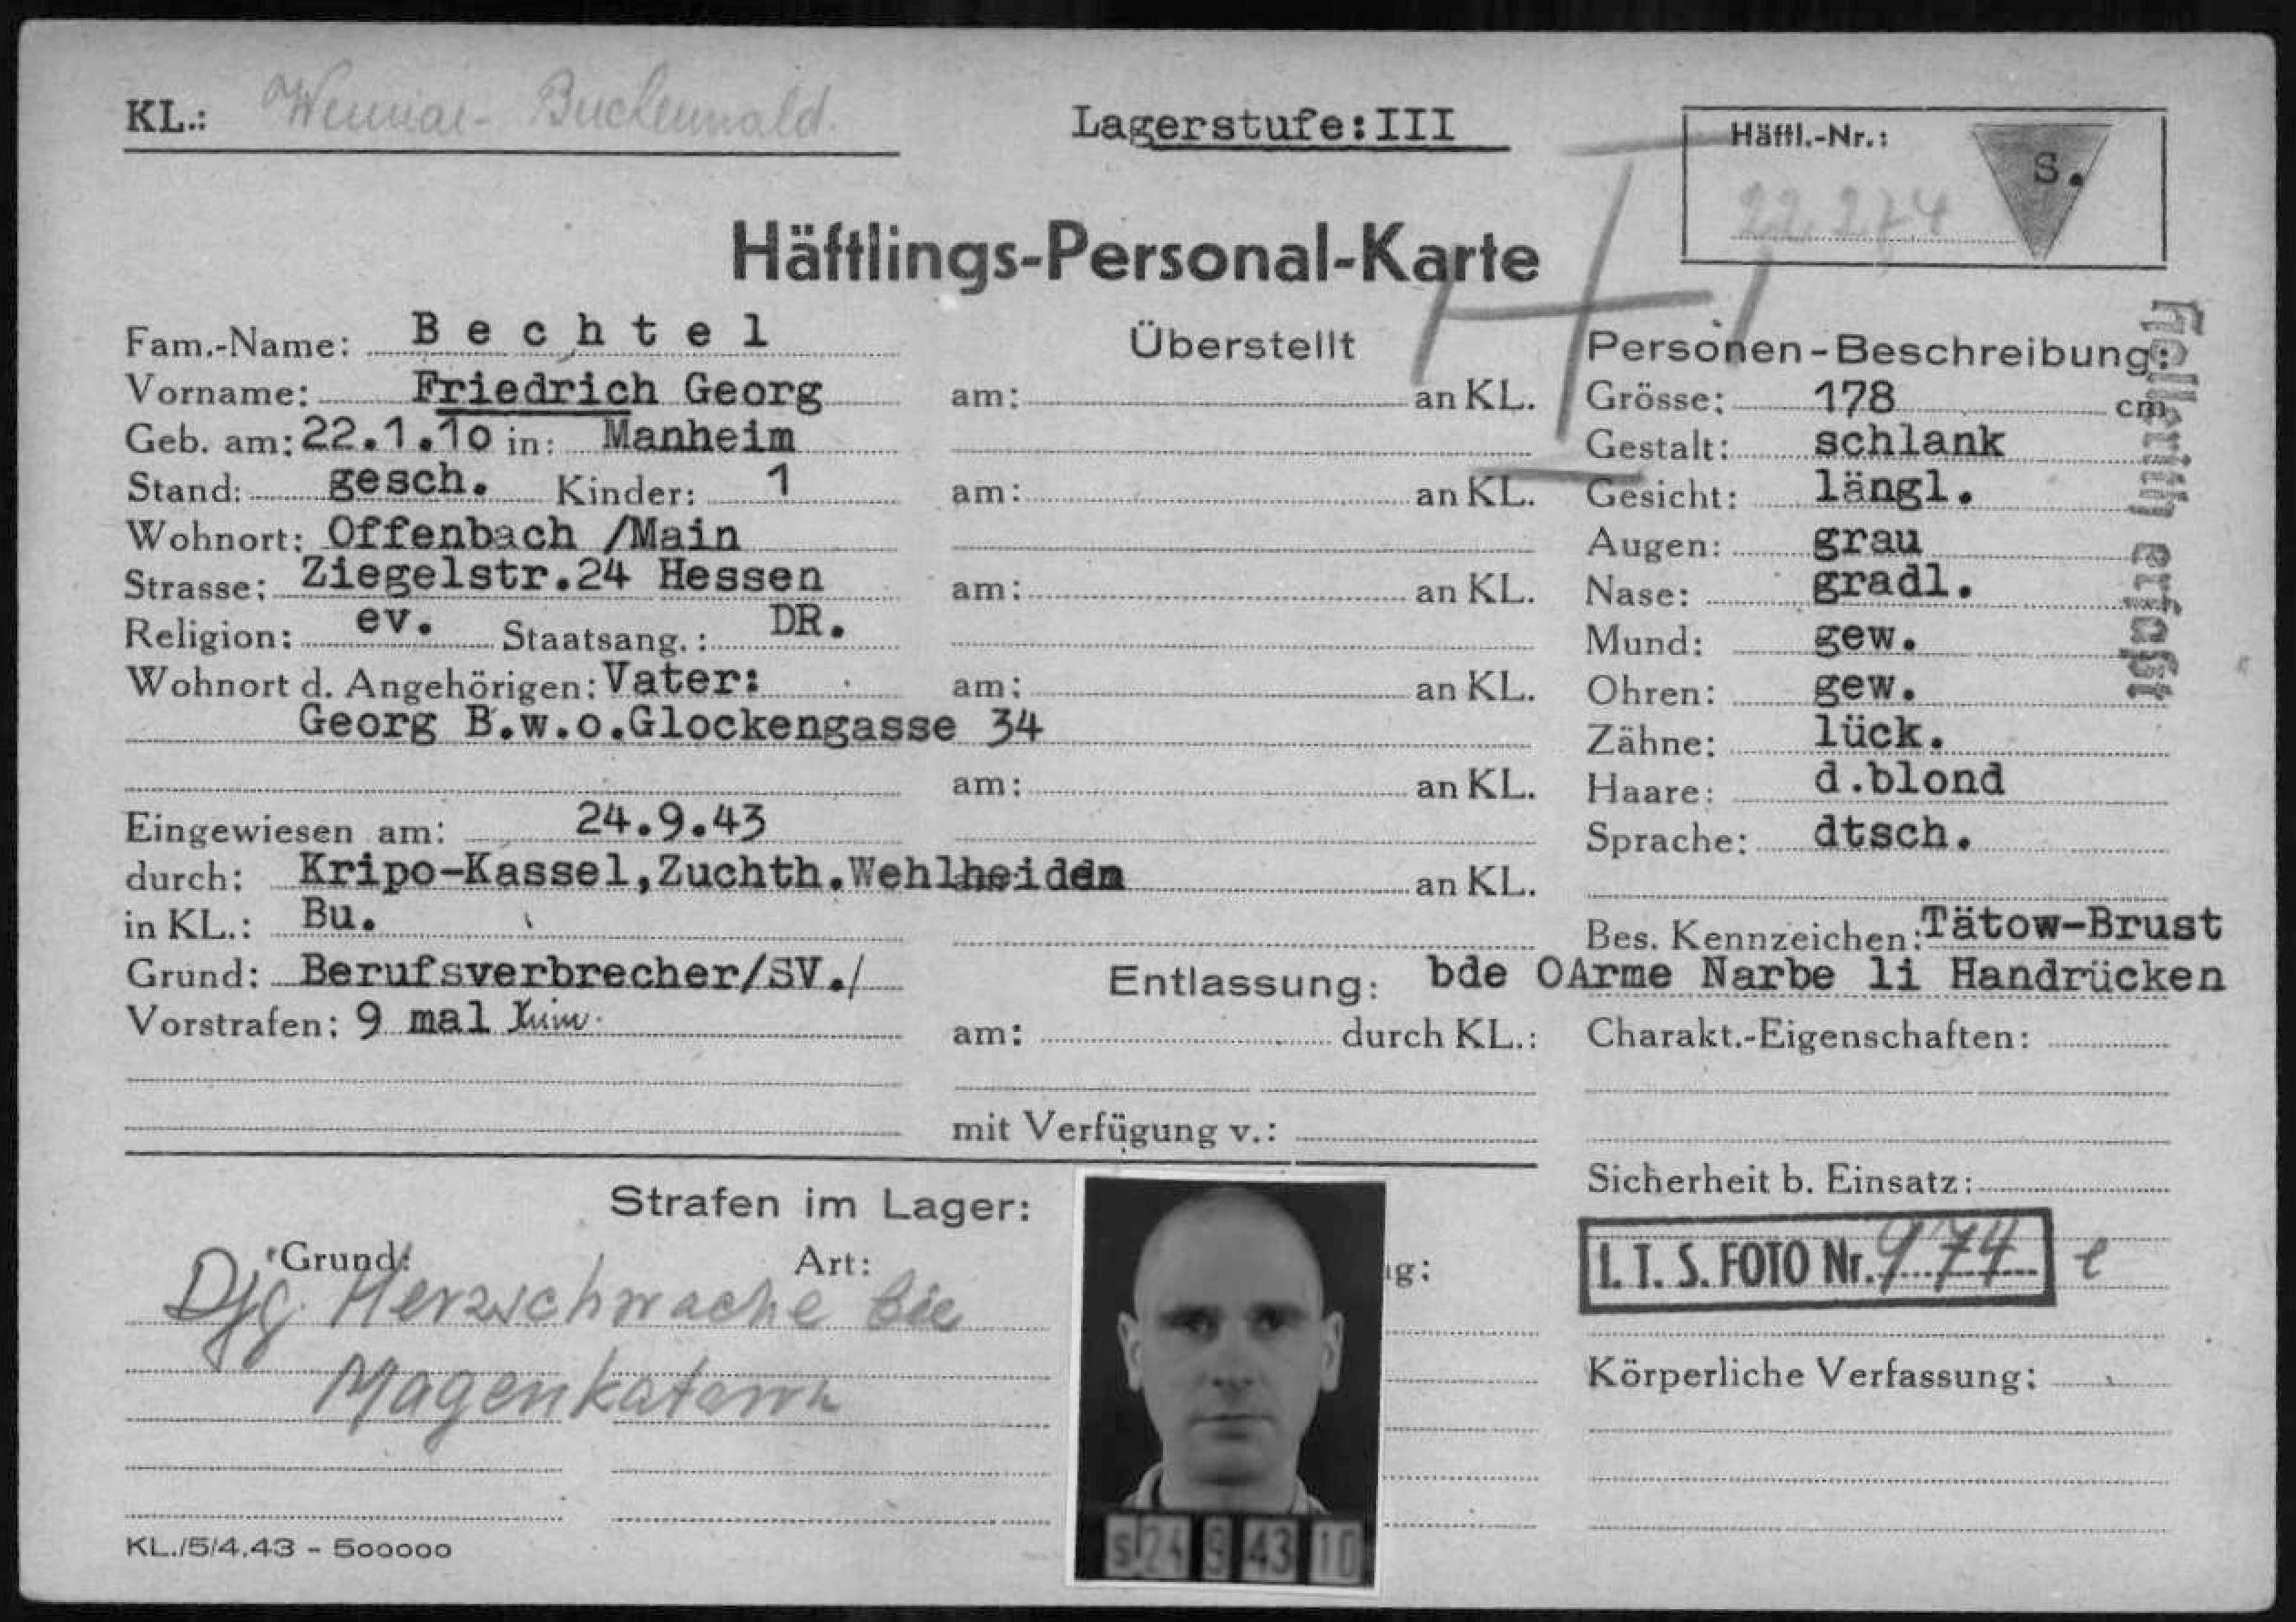 Buchenwald registration card showing an image and brief biographical information about Friedrich Bechtel